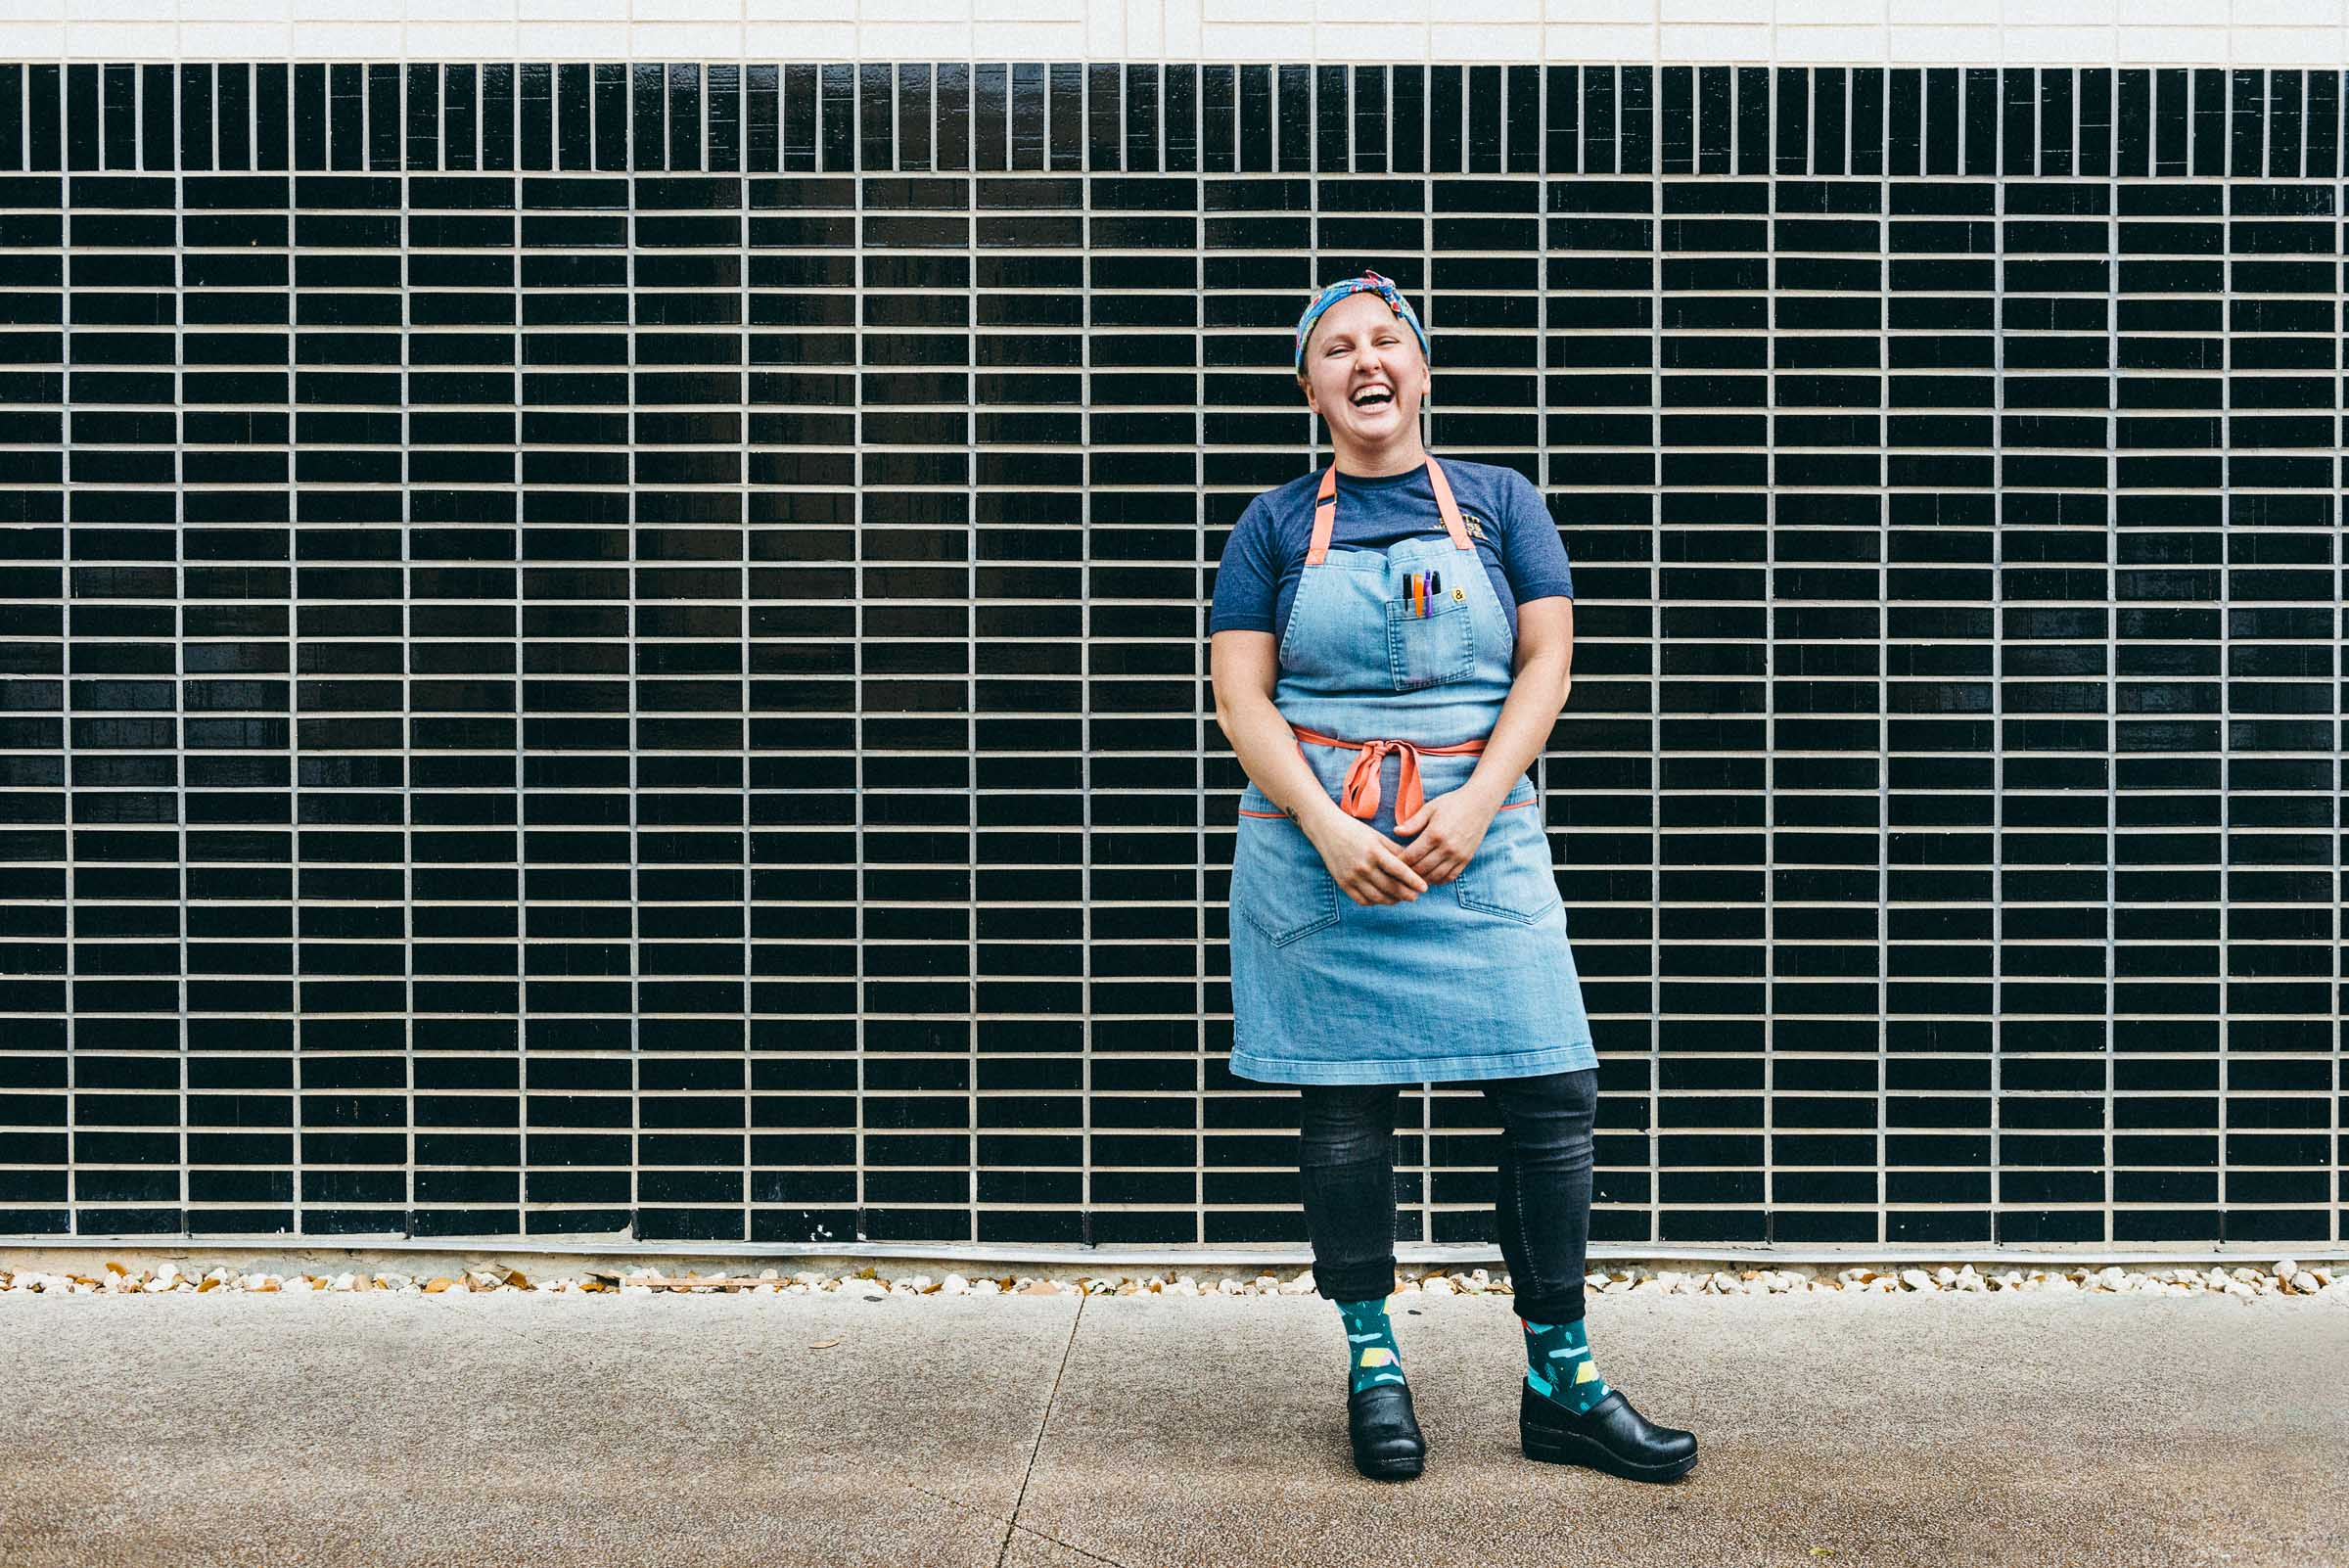 Pastry-Chef-Lindsay-Flagg-laughing -outside-Manana-Austin-TX